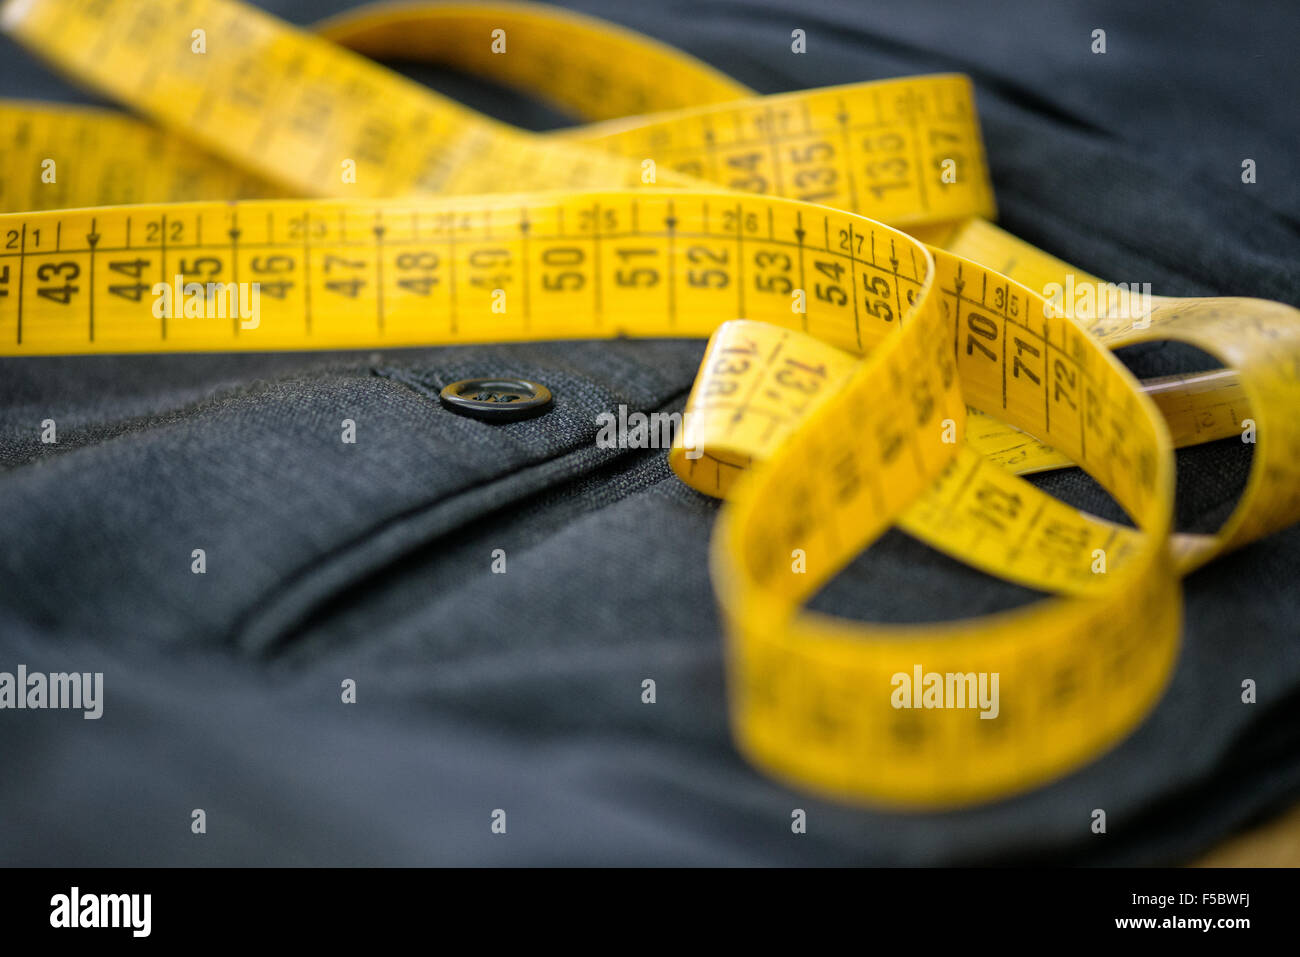 Measuring tape on pants in a tailor workshop, closeup - Stock Image